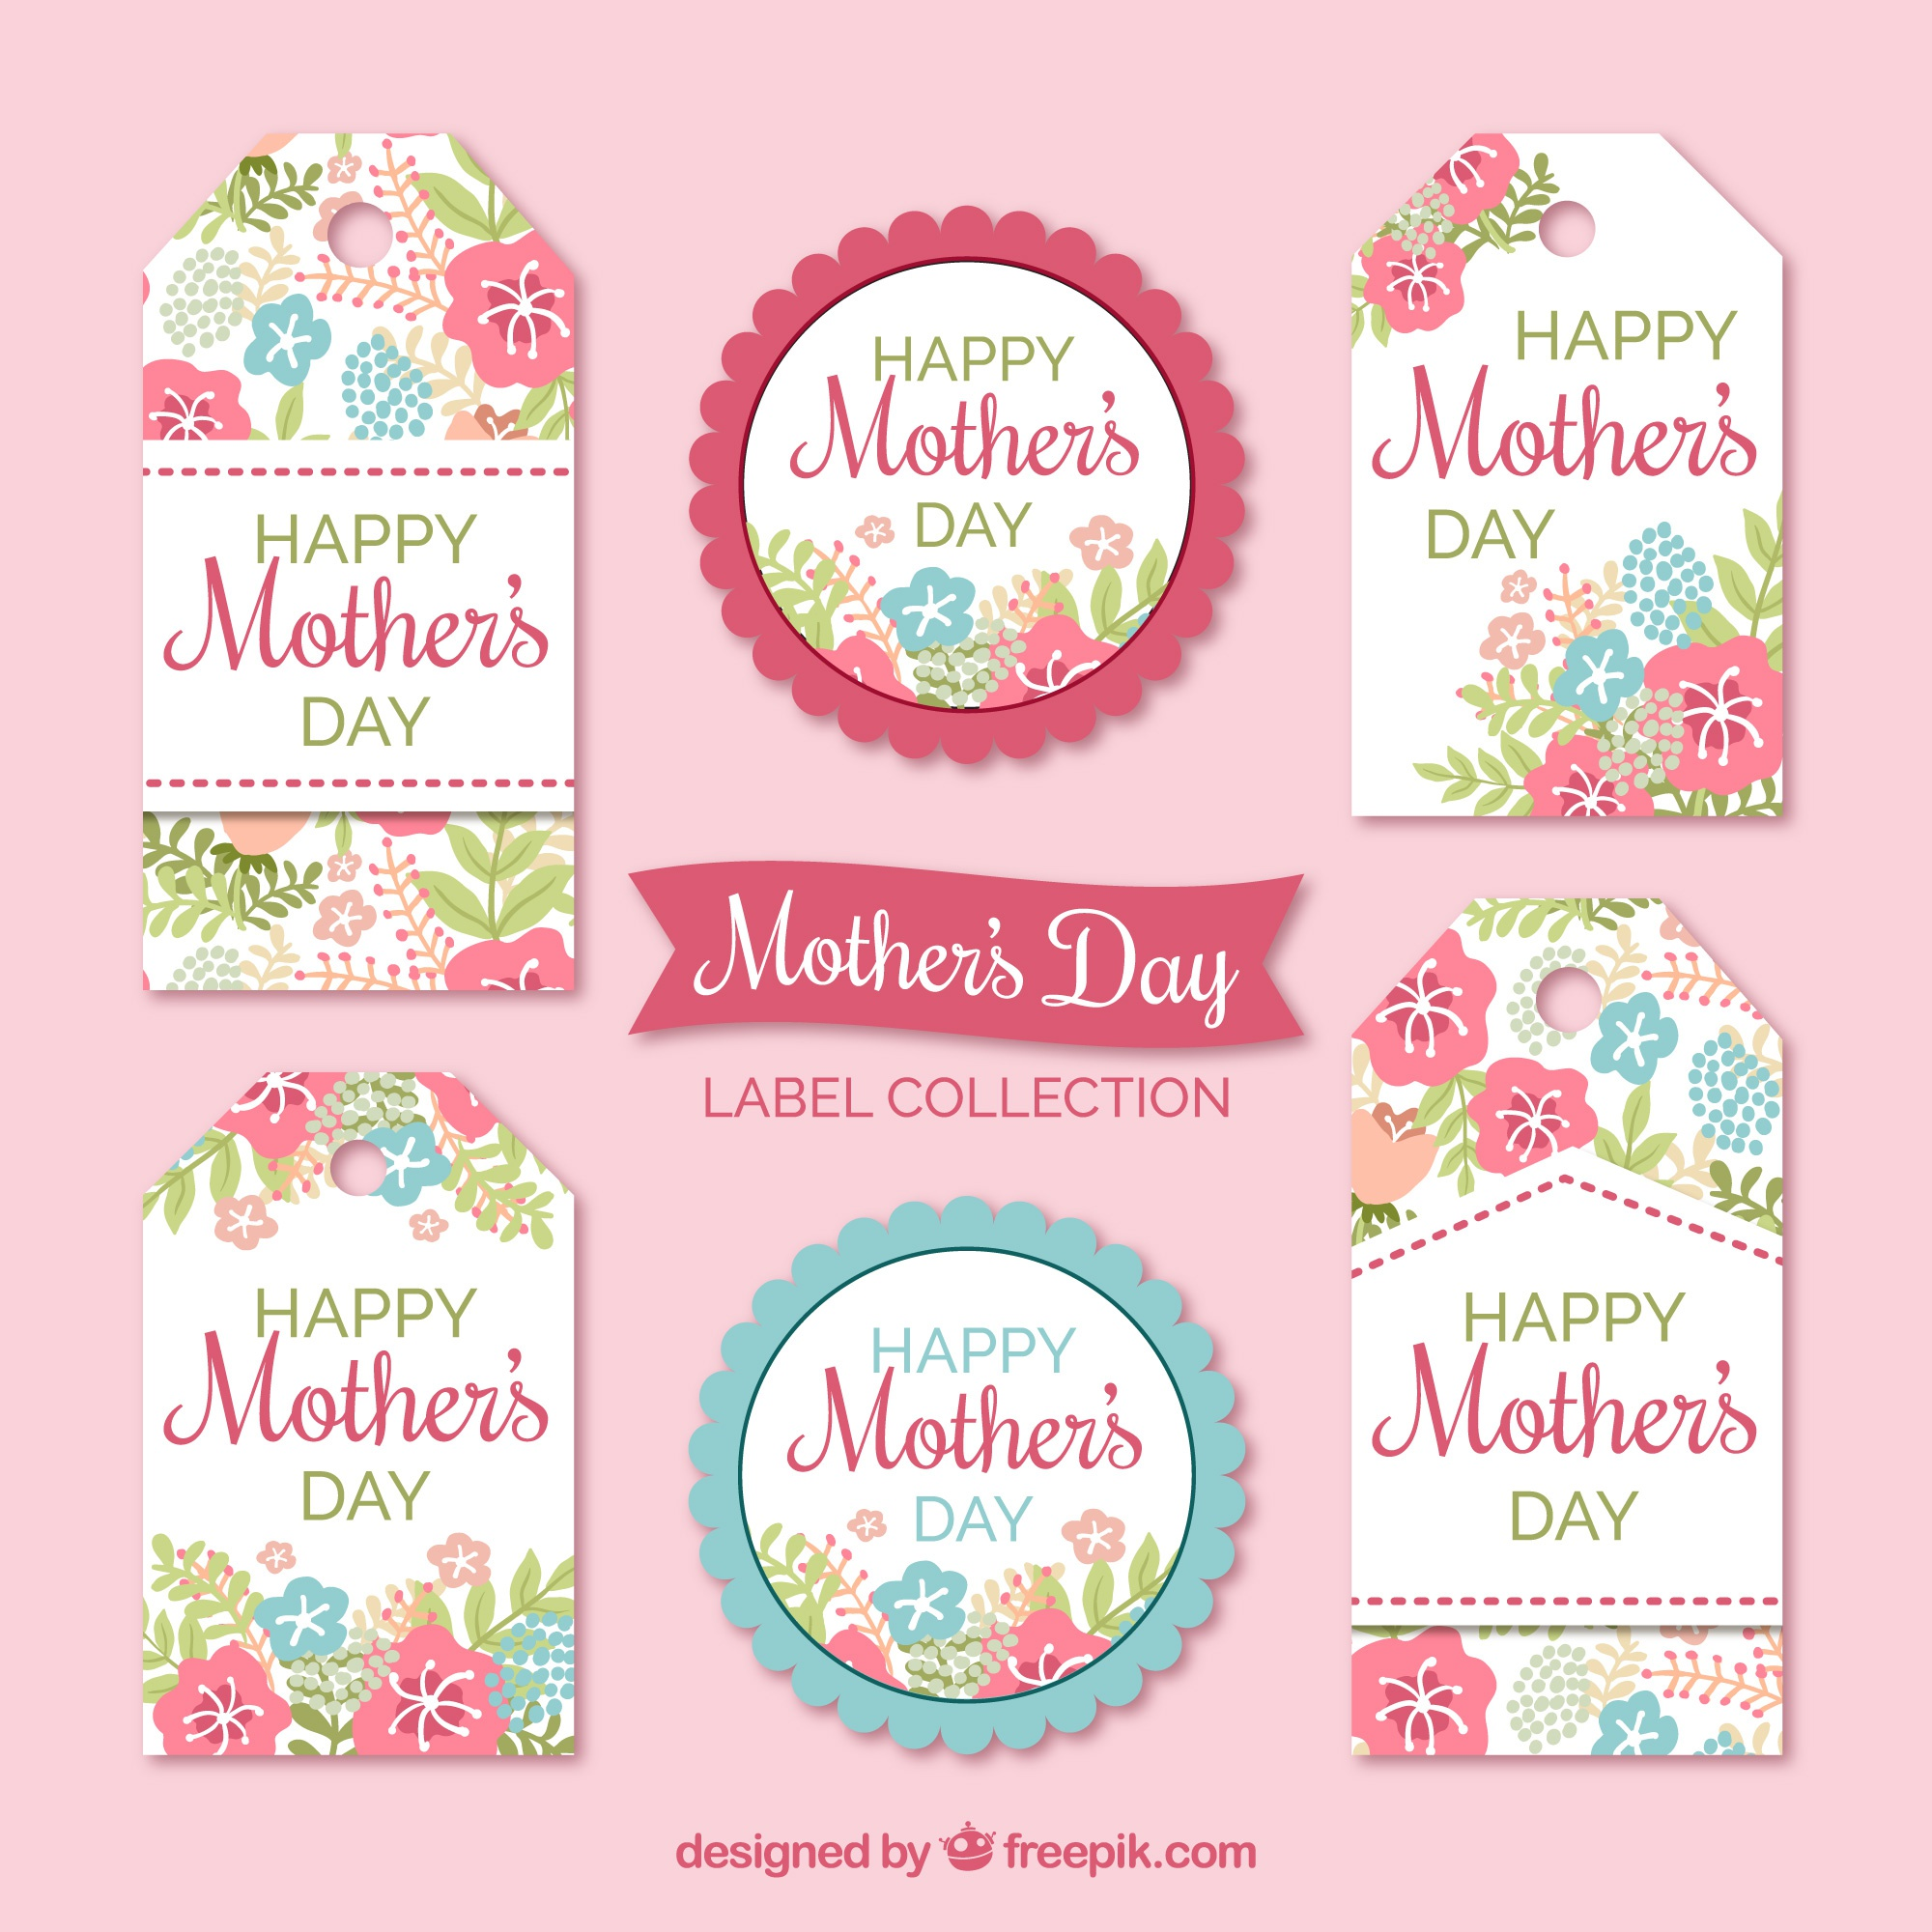 Floral labels in pastel colors for mother's day